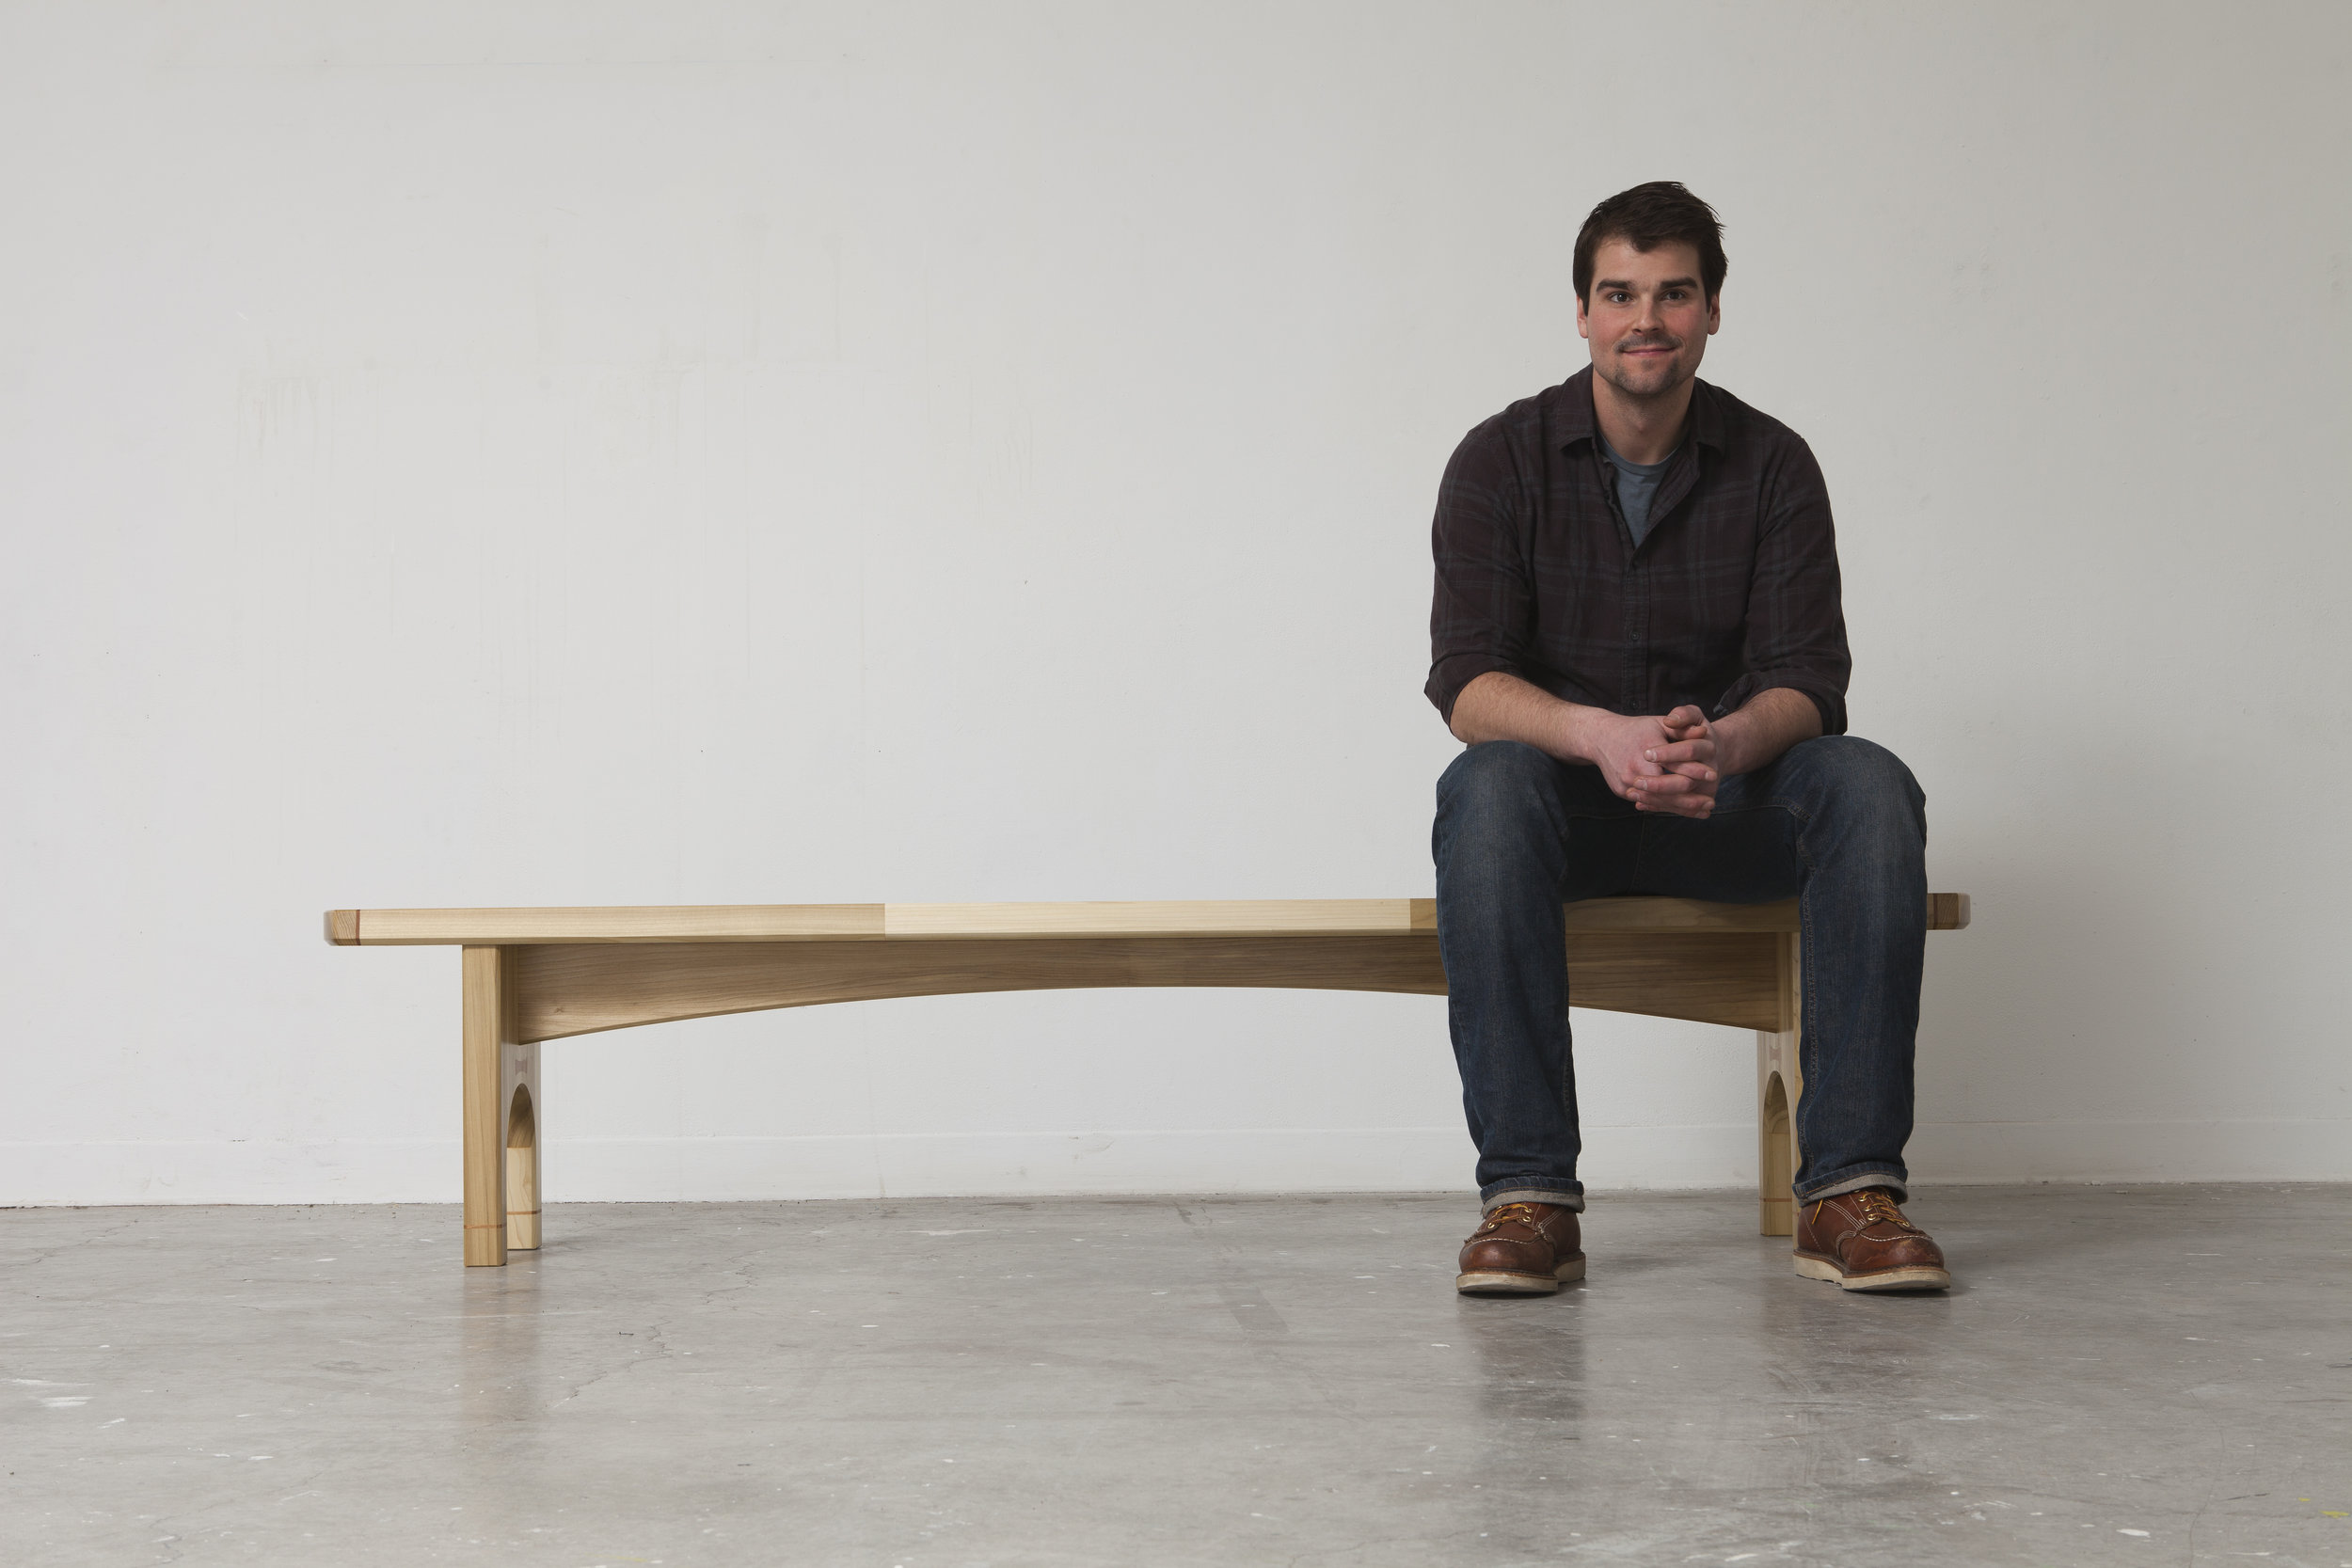 """I'm Mahlon, the Principal designer and chief workman here at Mahlon Huston Projects. - My objective is to design and produce well-engineered, highly crafted furniture that is poised and unencumbered. The methodology in my studio practice is to design each piece with the use of computer-aided drafting, while utilizing traditional woodworking methods in conjunction with manual labor for the production of each piece.The stylistic details found within my work, including accents of exposed joinery, sweeping and dramatic linear edges and taught surfaces. Convey the visual energy existing between hard and soft contours, and intentional color choices, all serve to bring levity to each individual work.These markers grow from my captivation with the formal characteristics found in mid- 20thcentury furniture, and from the cubist movement. Through my interpretations of these inspired forms, I am able to portray my own style of contemporary design thus creating a space """"where craft styles elegance""""."""